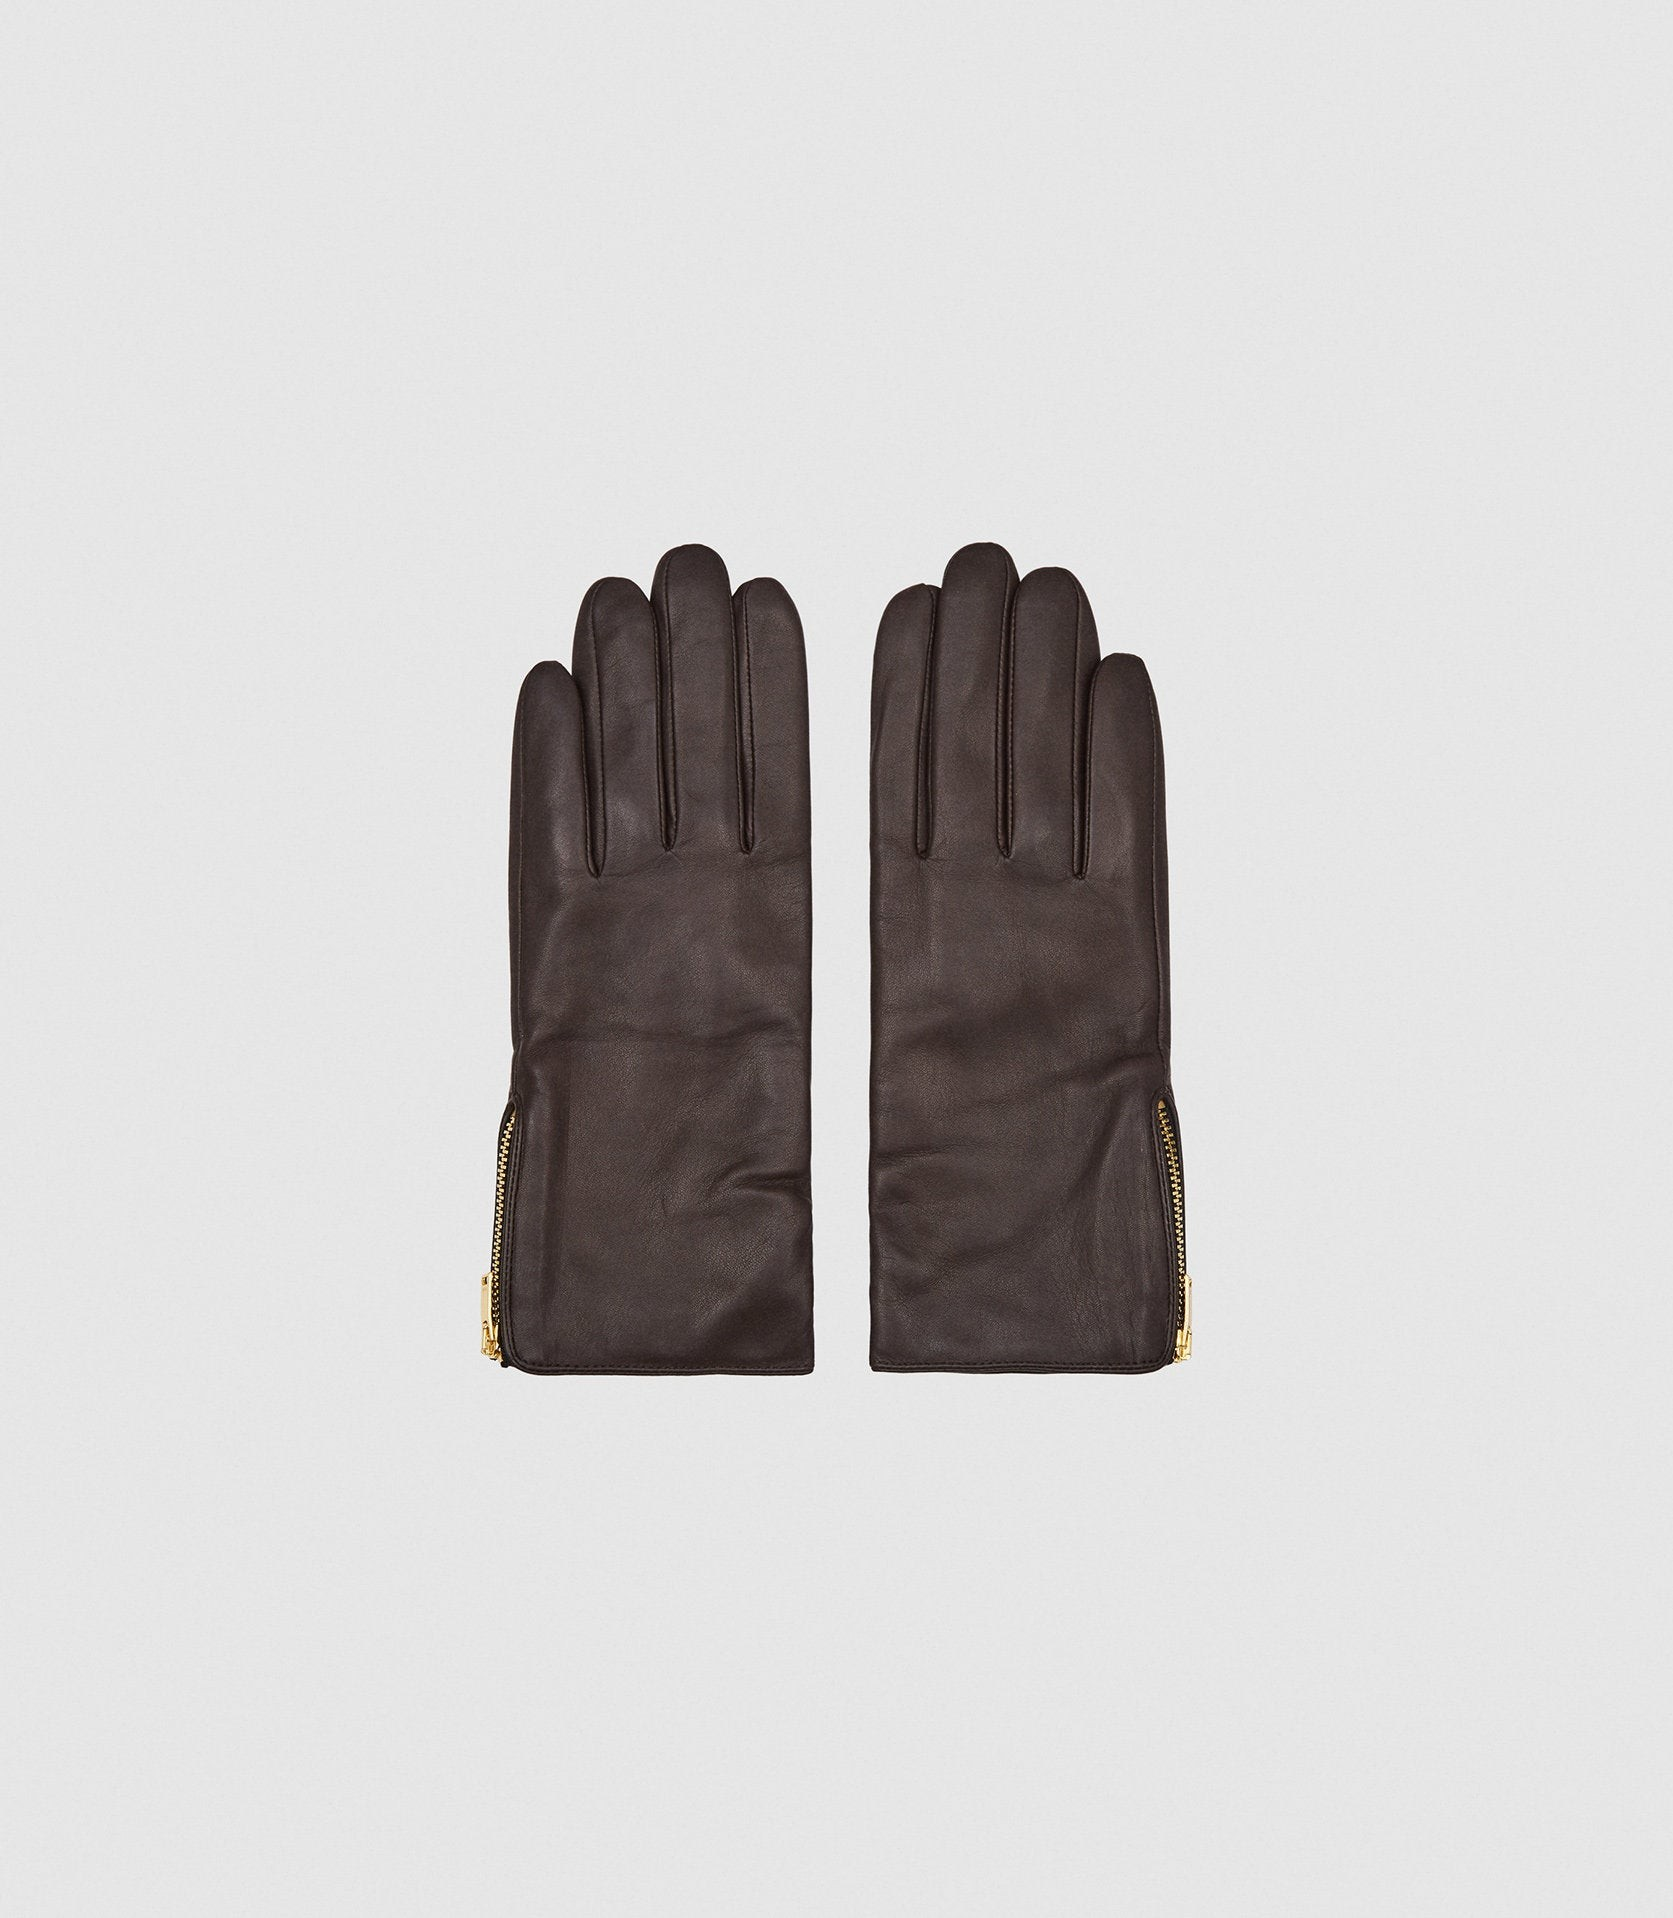 Reiss Emily - Leather Zip Detail Chocolate, Womens, Size S Glove